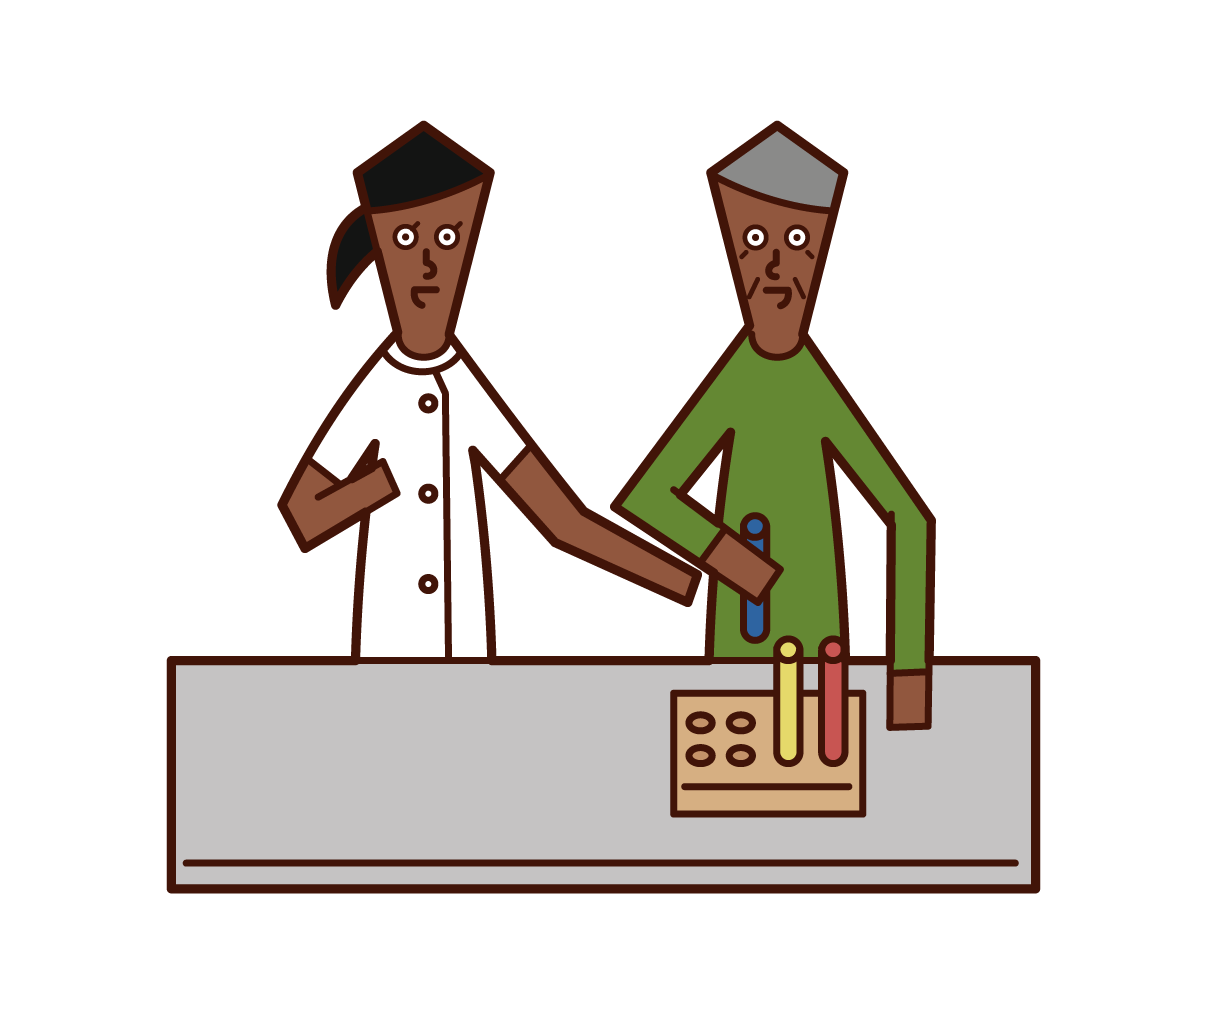 Illustration of an occupational therapist (woman)